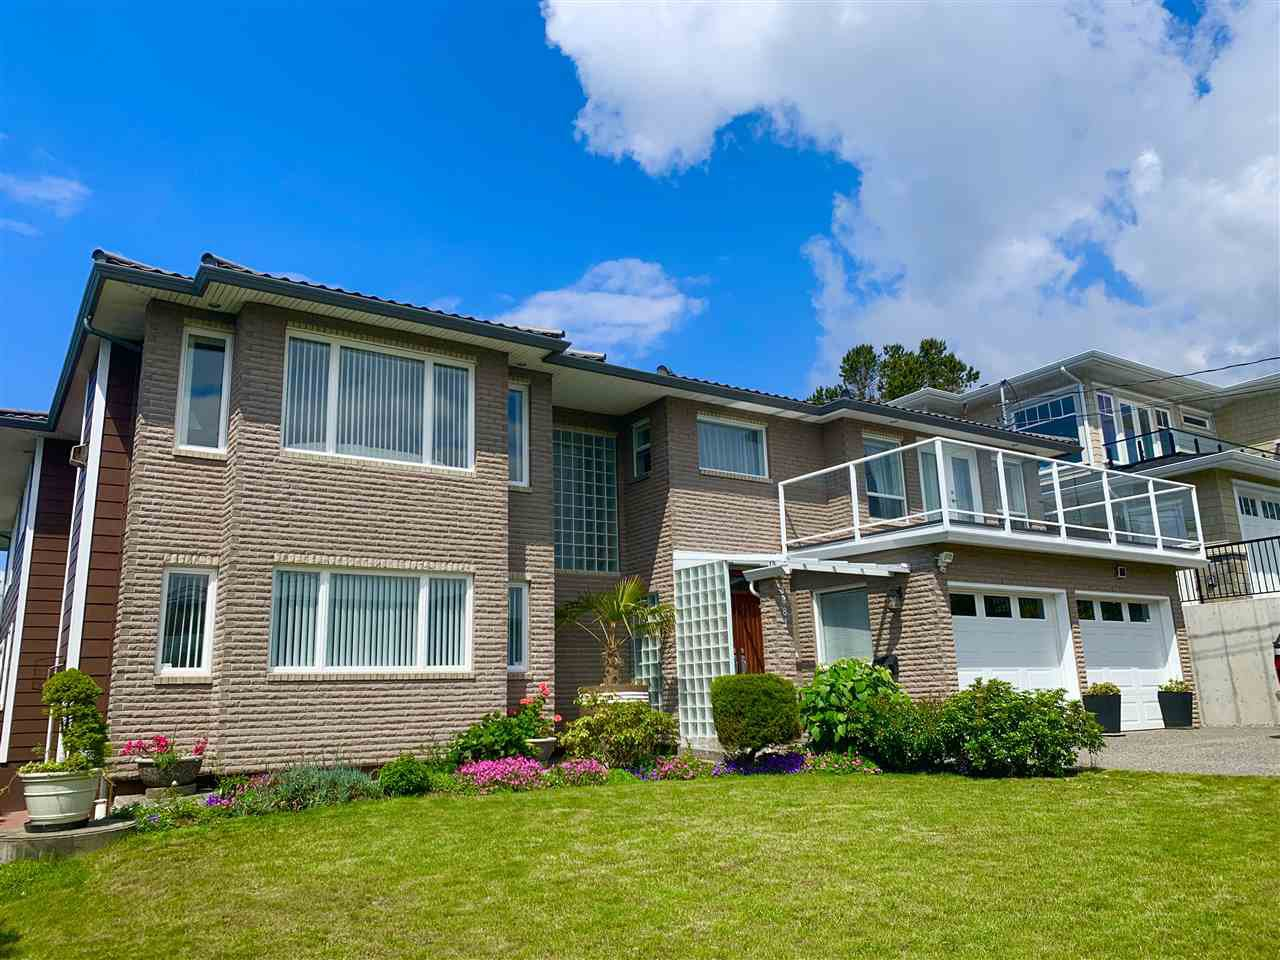 Main Photo: 1081 LEE Street: White Rock House for sale (South Surrey White Rock)  : MLS®# R2463700